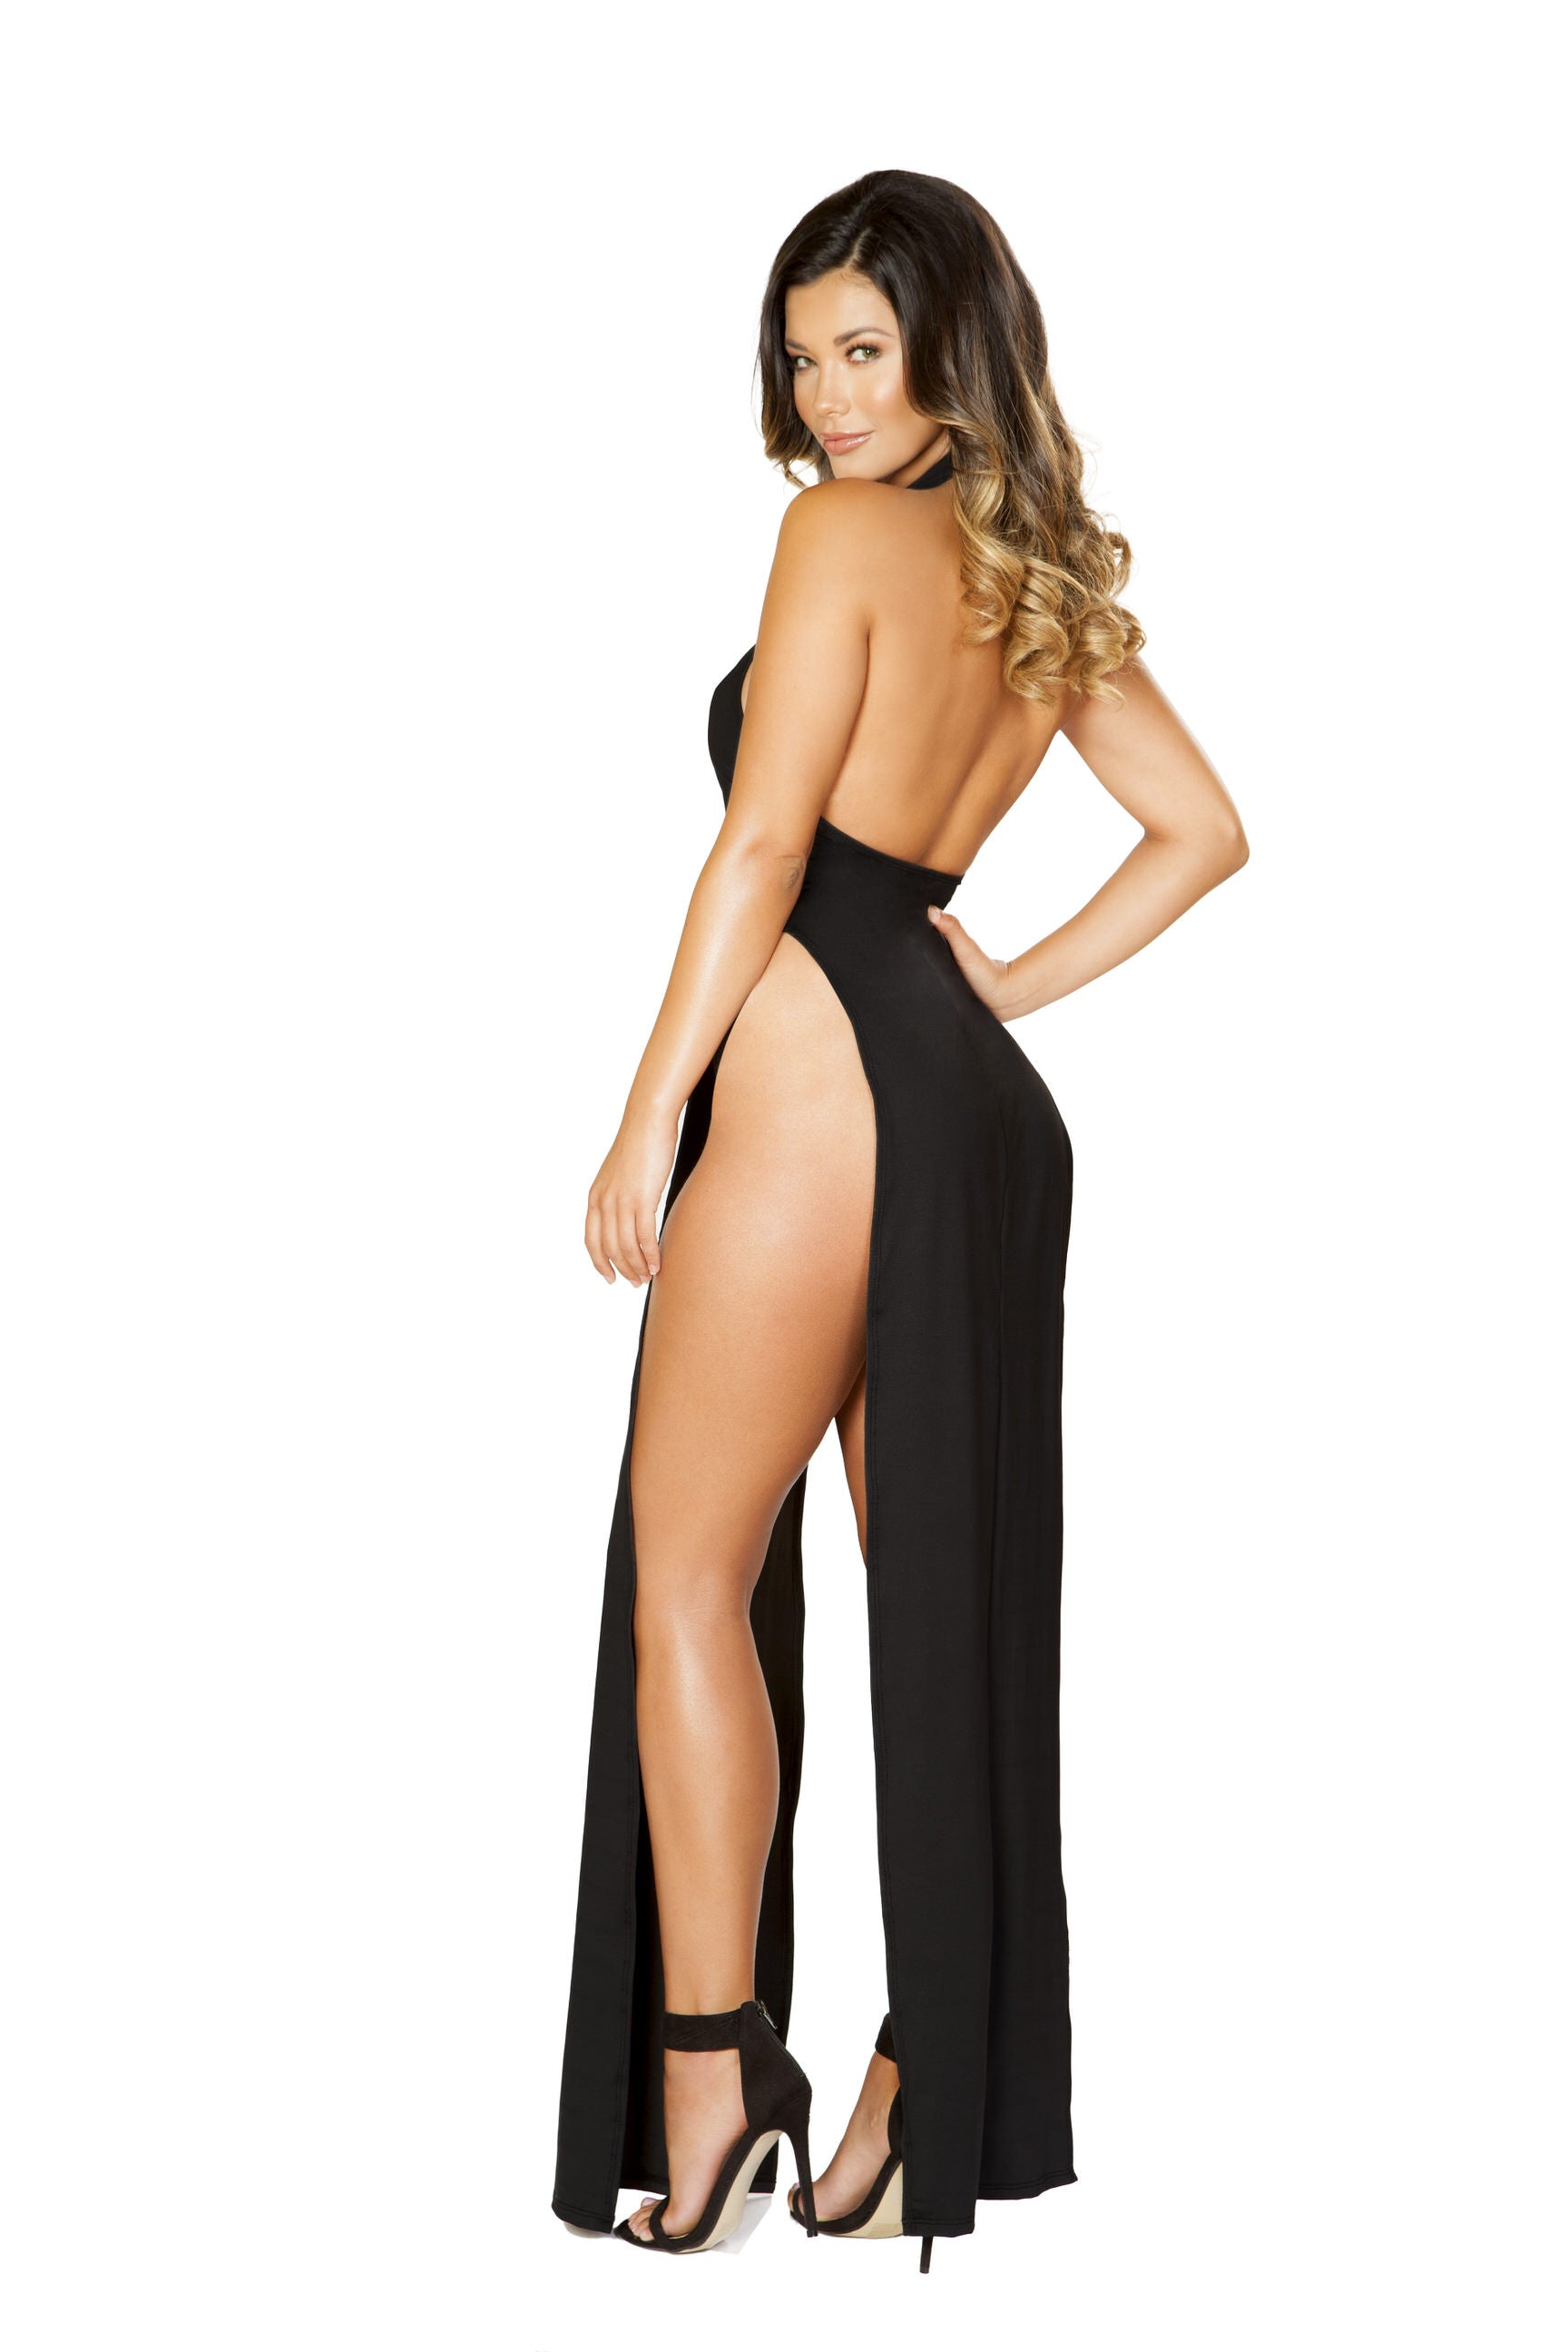 3529 - Maxi Length Halter Neck Dress with High Slits ${description} | Roma Costume and Roma Confidential wholesale manufacturer of Women Apparel bulk world wide wholesale and world wide drop ship services for Adult Halloween Costumes, Sexy and Elegant Lingerie, Rave Clothing, Club wear, and Christmas Costumes. Mini Dresses, Roma Costume, Inc., Roma Costume, Roma Confidential, Wholesale clothing, drop ship, drop ship service, Wholesale Lingerie, Wholesale Adult Halloween Costumes, Rave Clothing, EDM Clothing, Festival Wear, Christmas Costumes, Clubwear, Club wear.